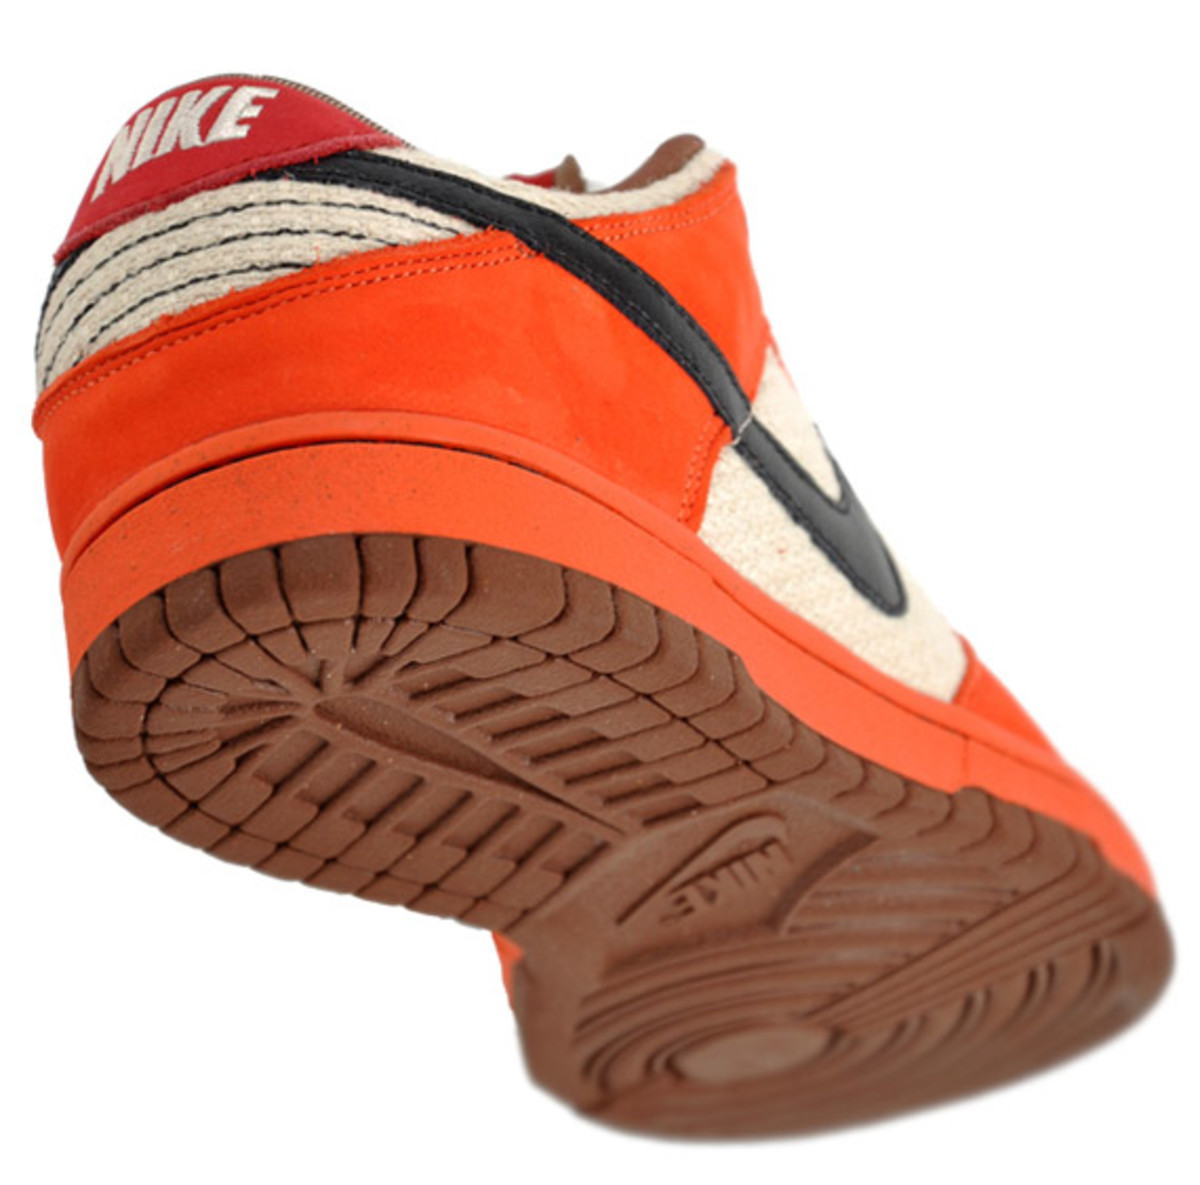 nike-sb-dunk-low-un-hemp-orange-3